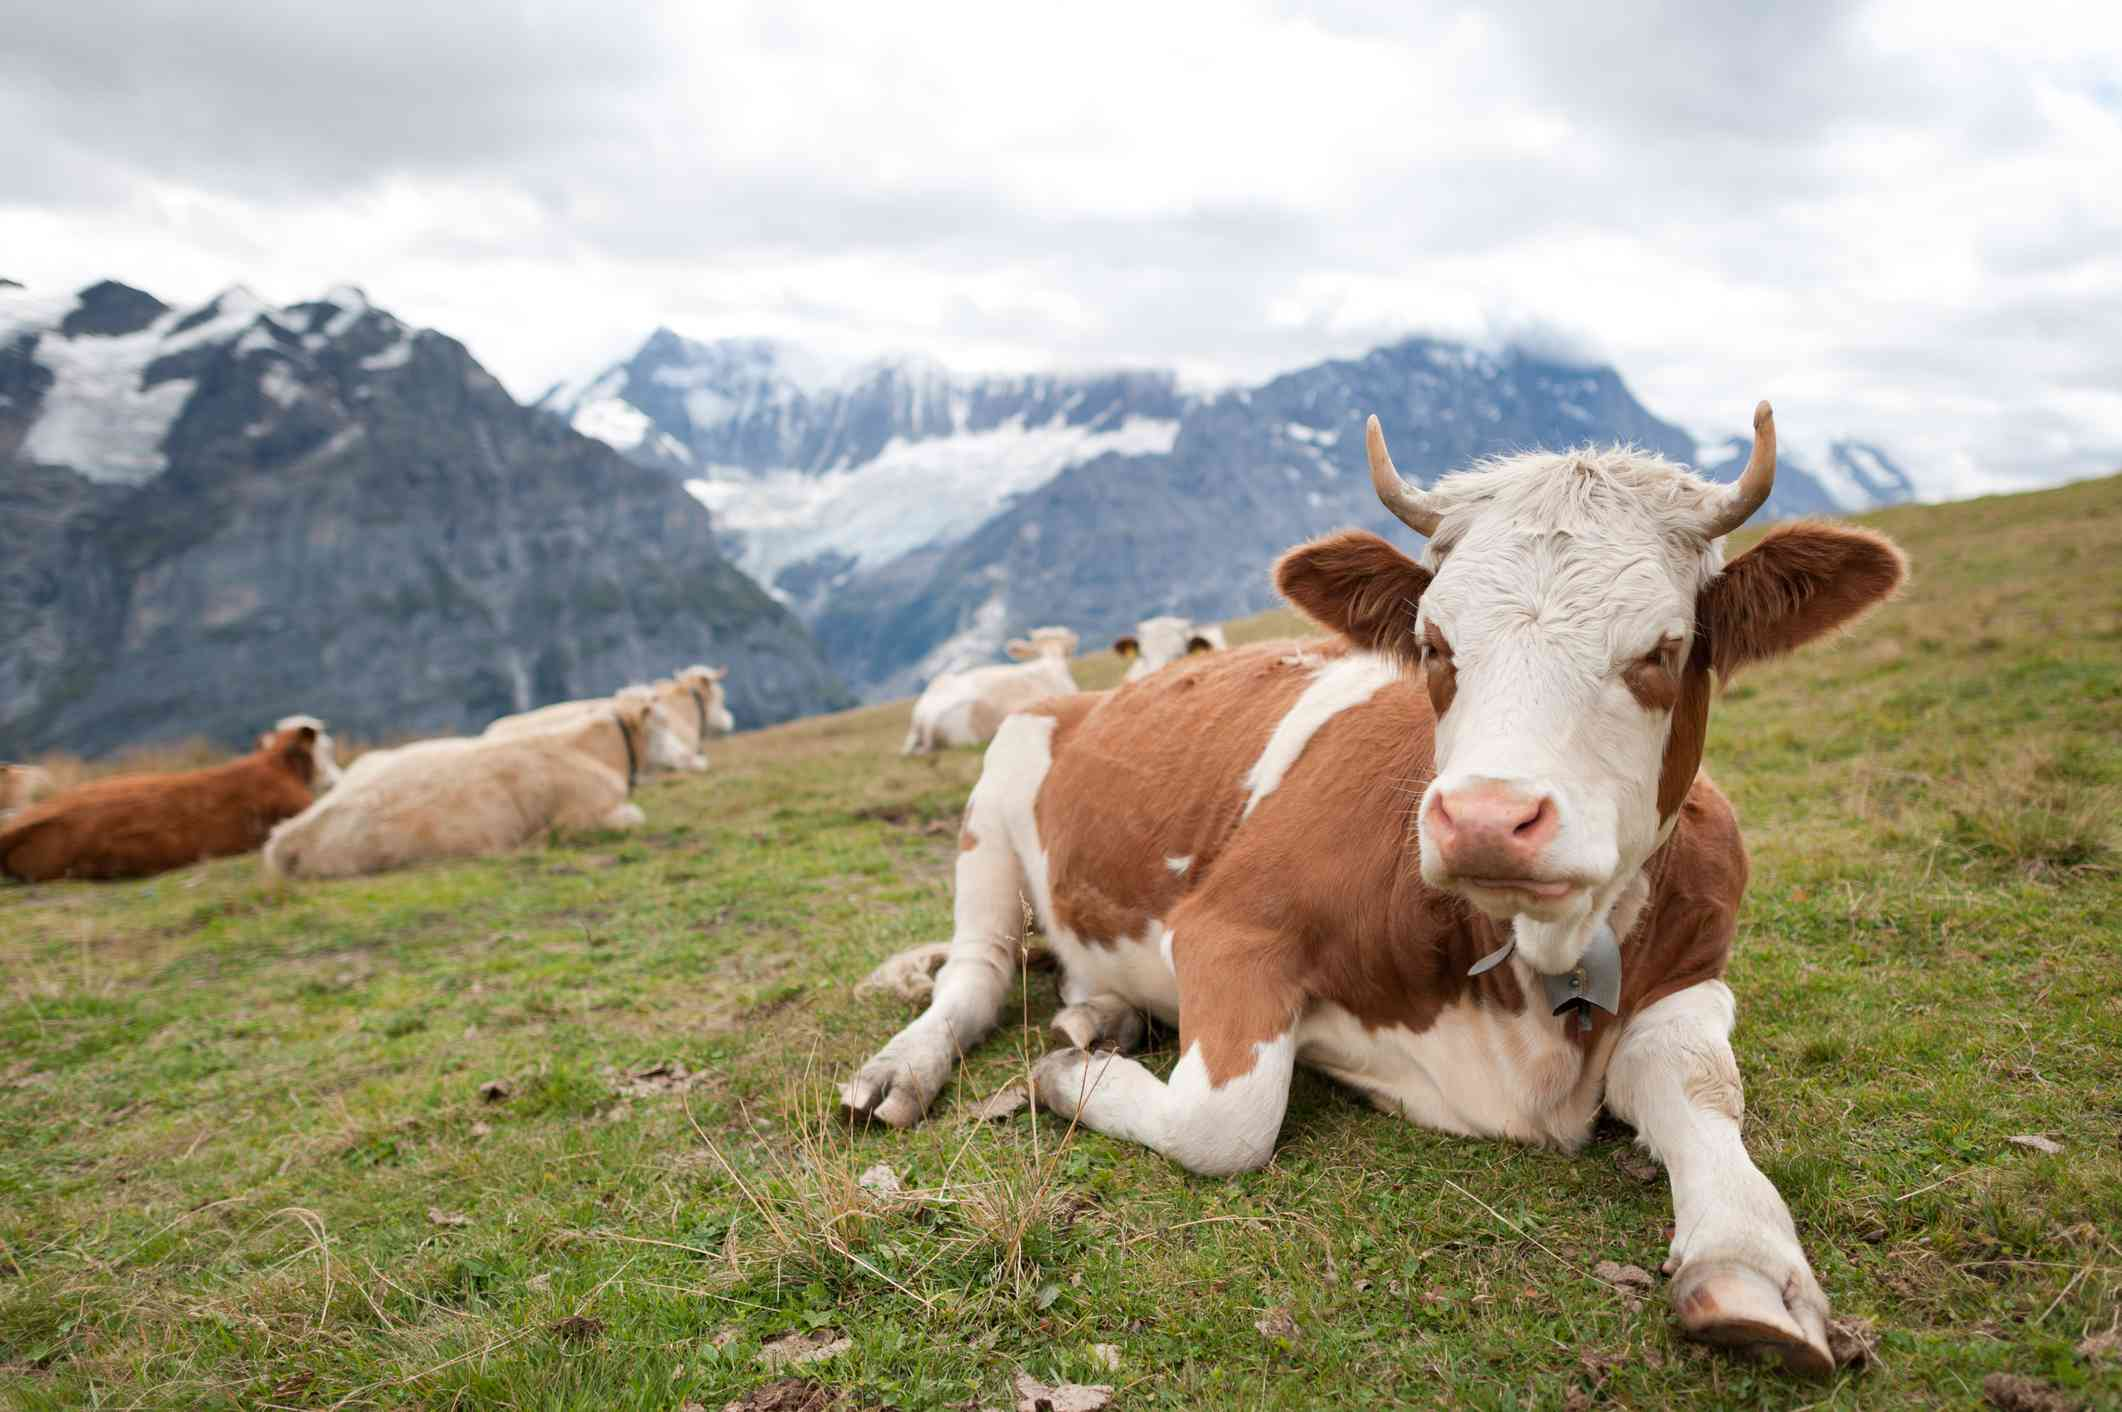 A brown and white cow lies in the grass in front of a backdrop of snow-capped mountains